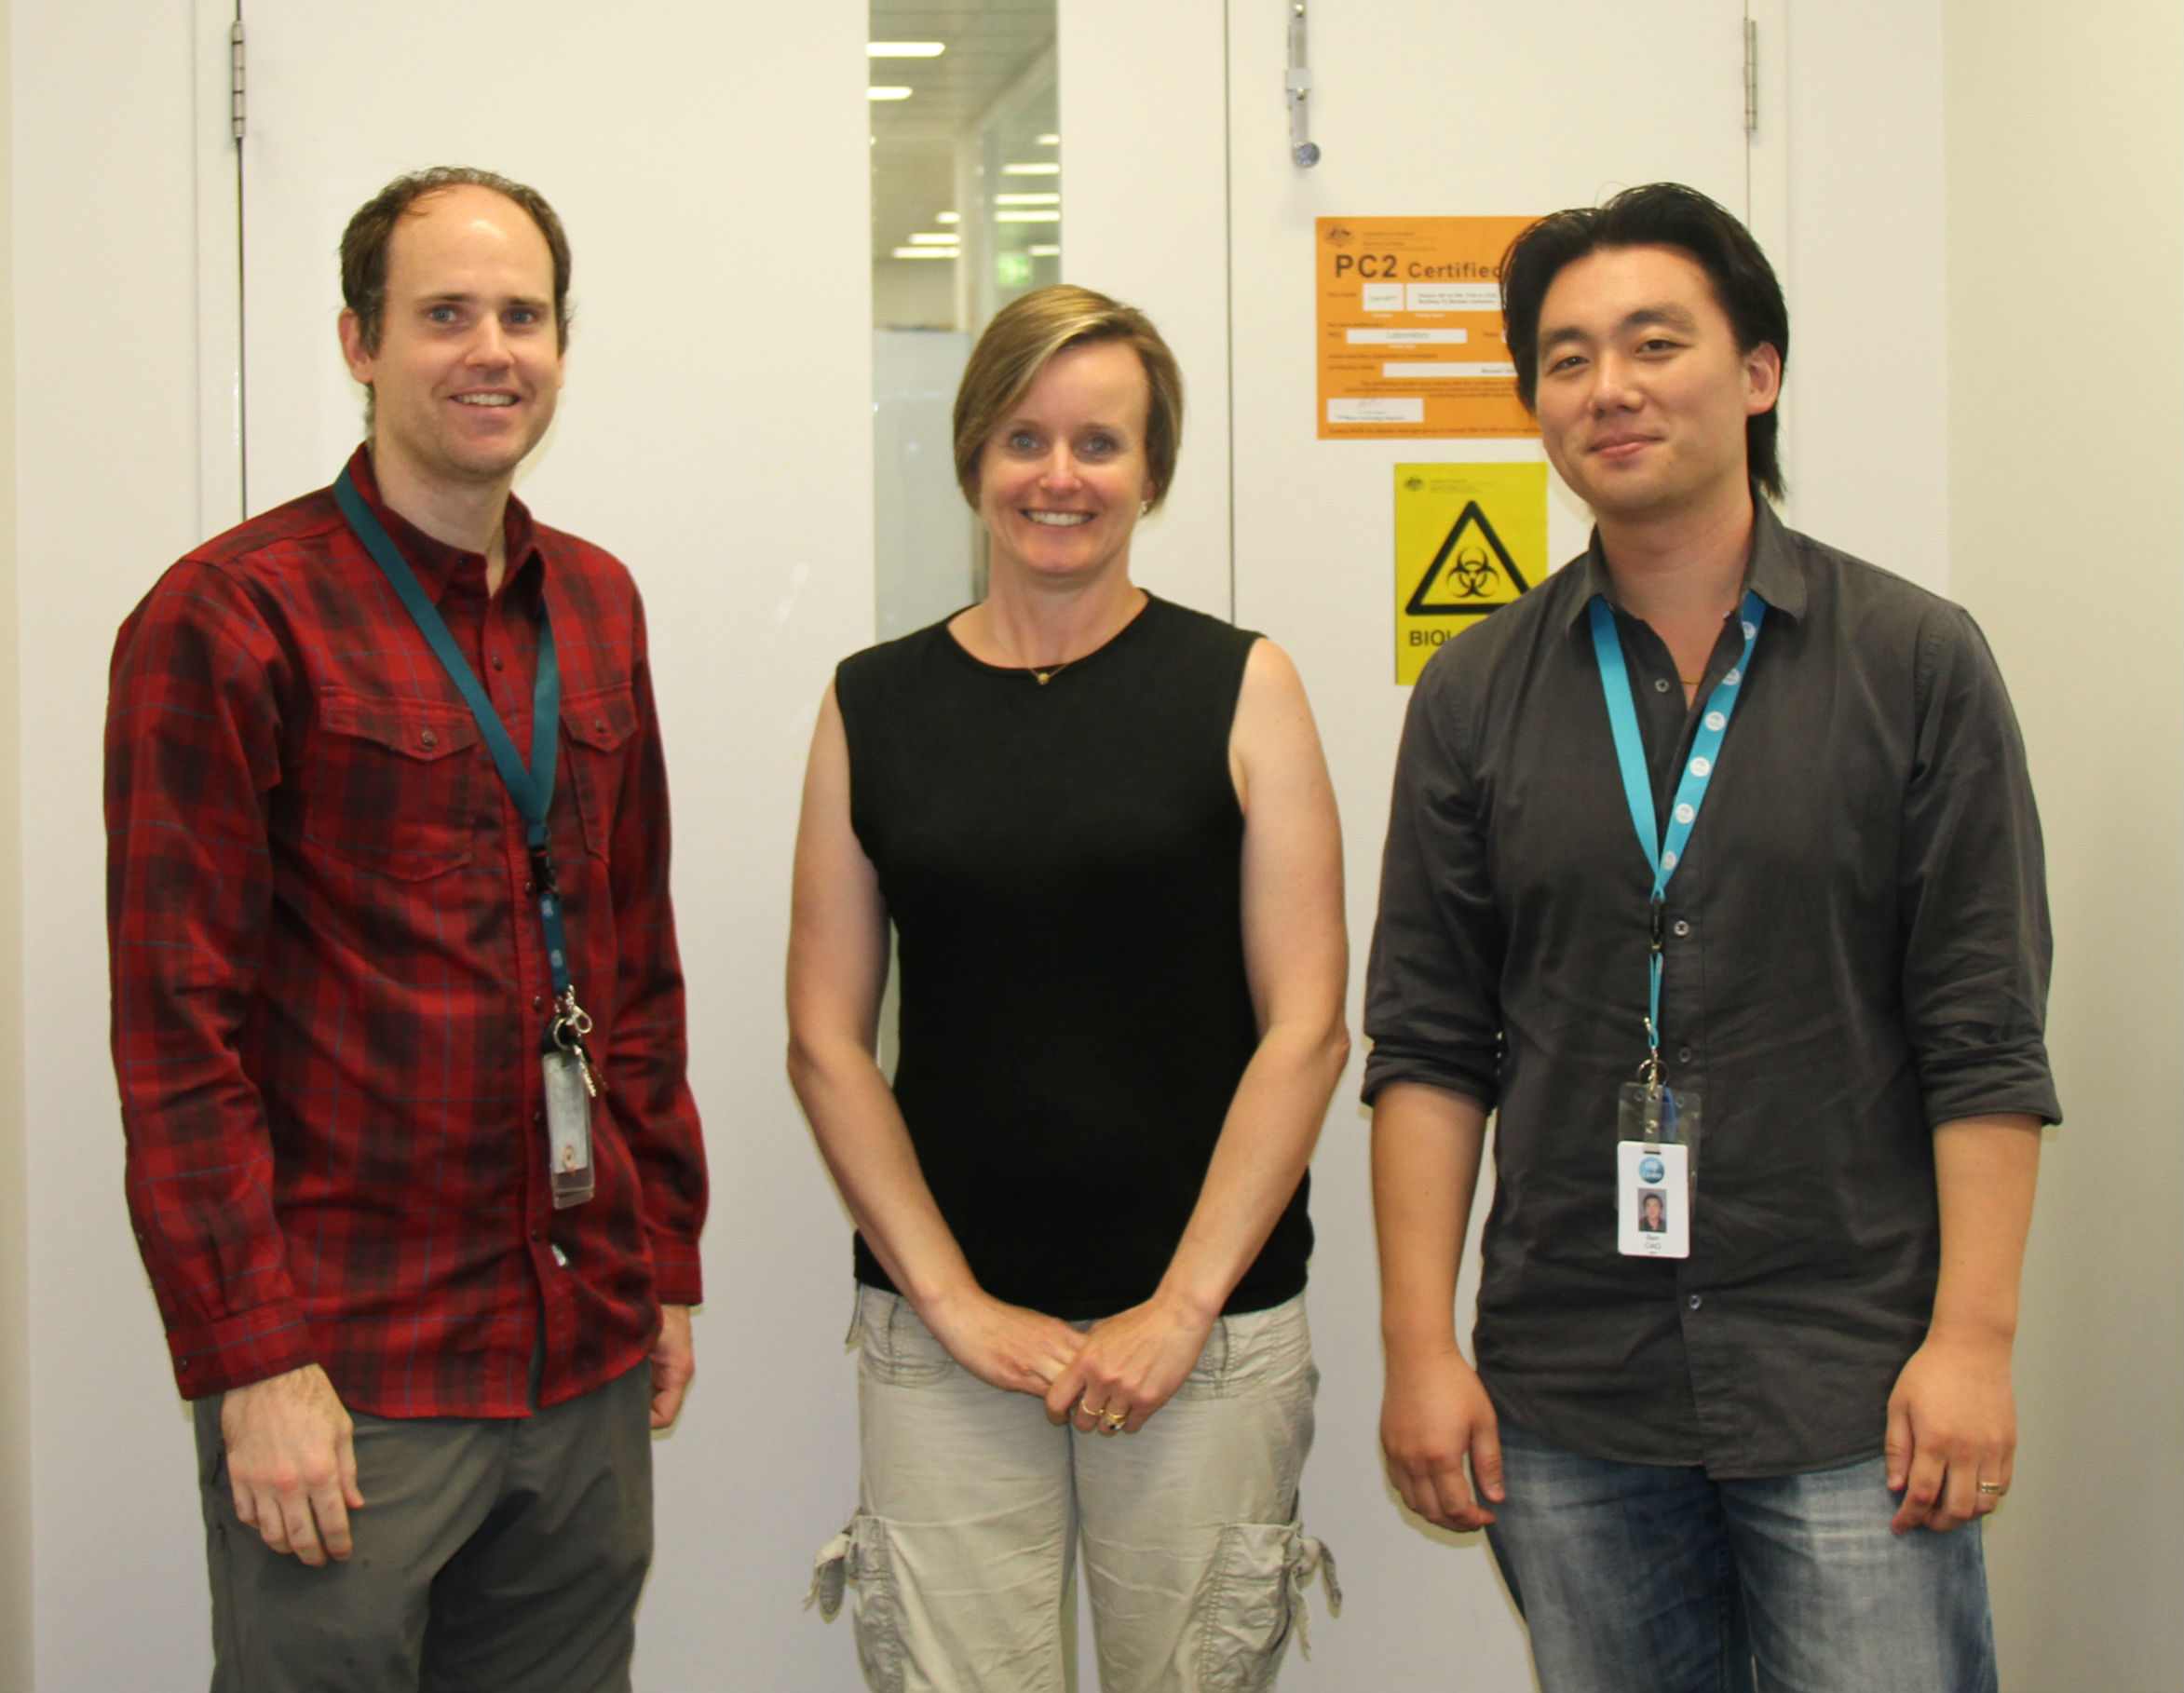 The ARMI research team behind the small molecule discovery. From left to right: CSIRO's Dr Chad Heazlewood, Dr Susie Nilsson and Dr Ben Cao.